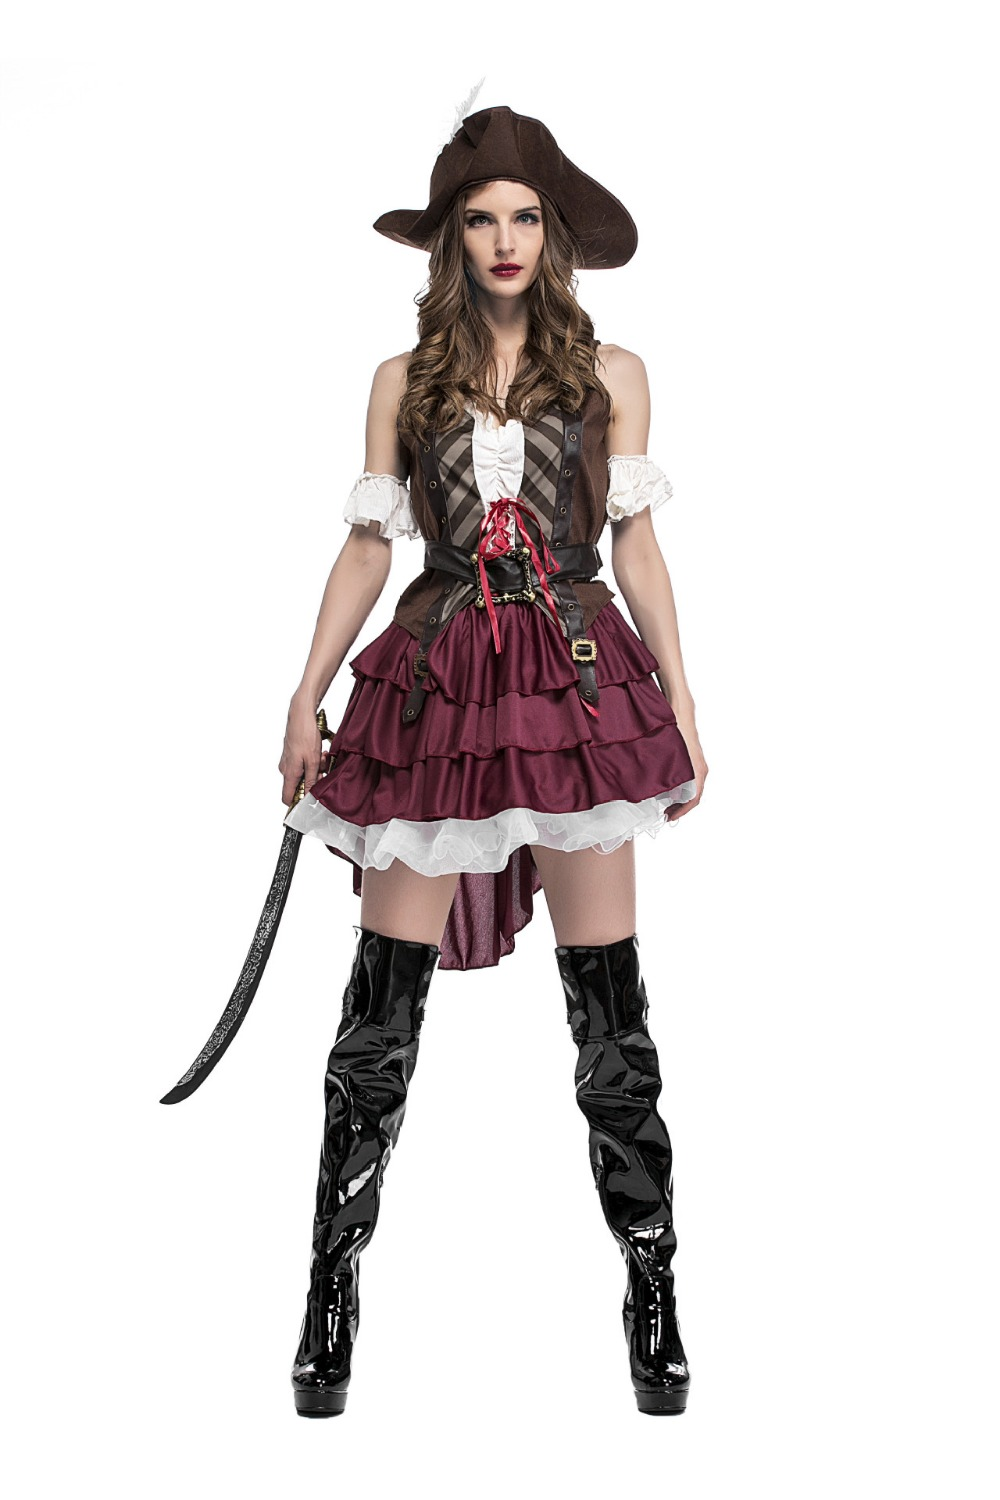 Sexy Women Halloween Cosplay Costume Pirates Fancy Dress Outfit Carribbean Party Cloth Free Size